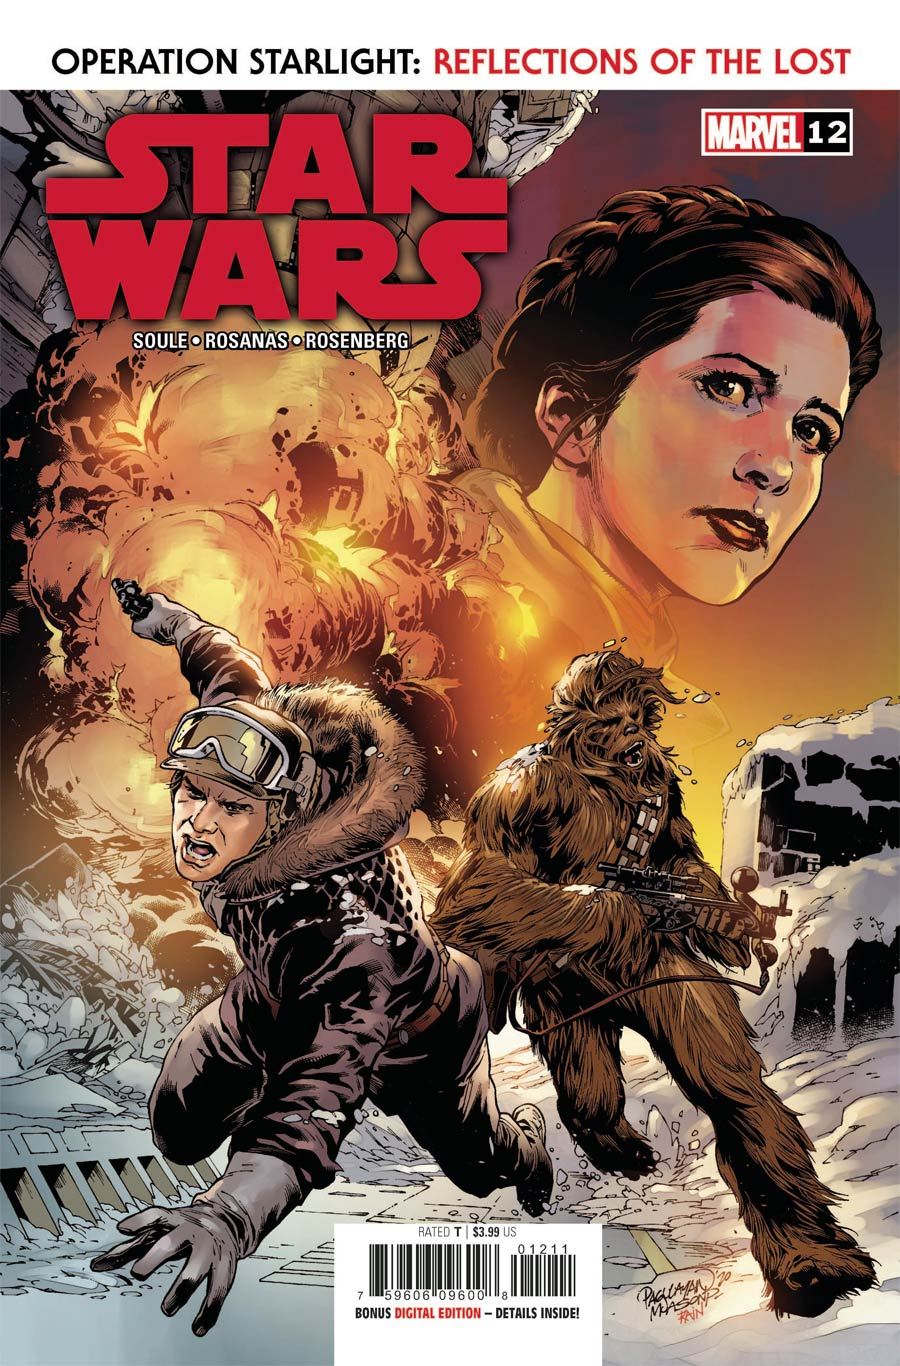 Star Wars Vol 5 #12 Cover A Regular Carlo Pagulayan Cover